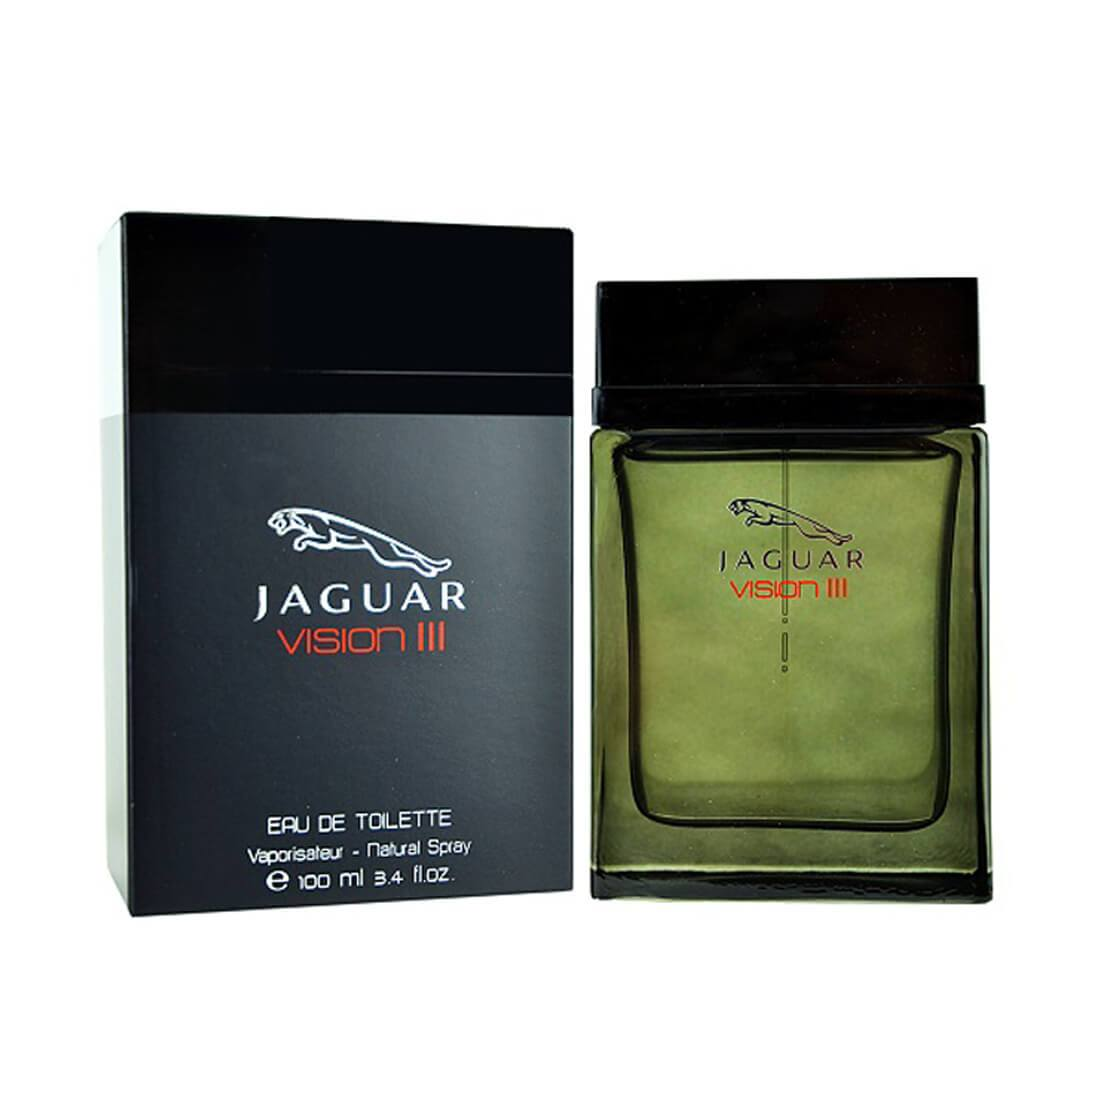 Jaguar Vision III EDT Perfume For Men - 100ml